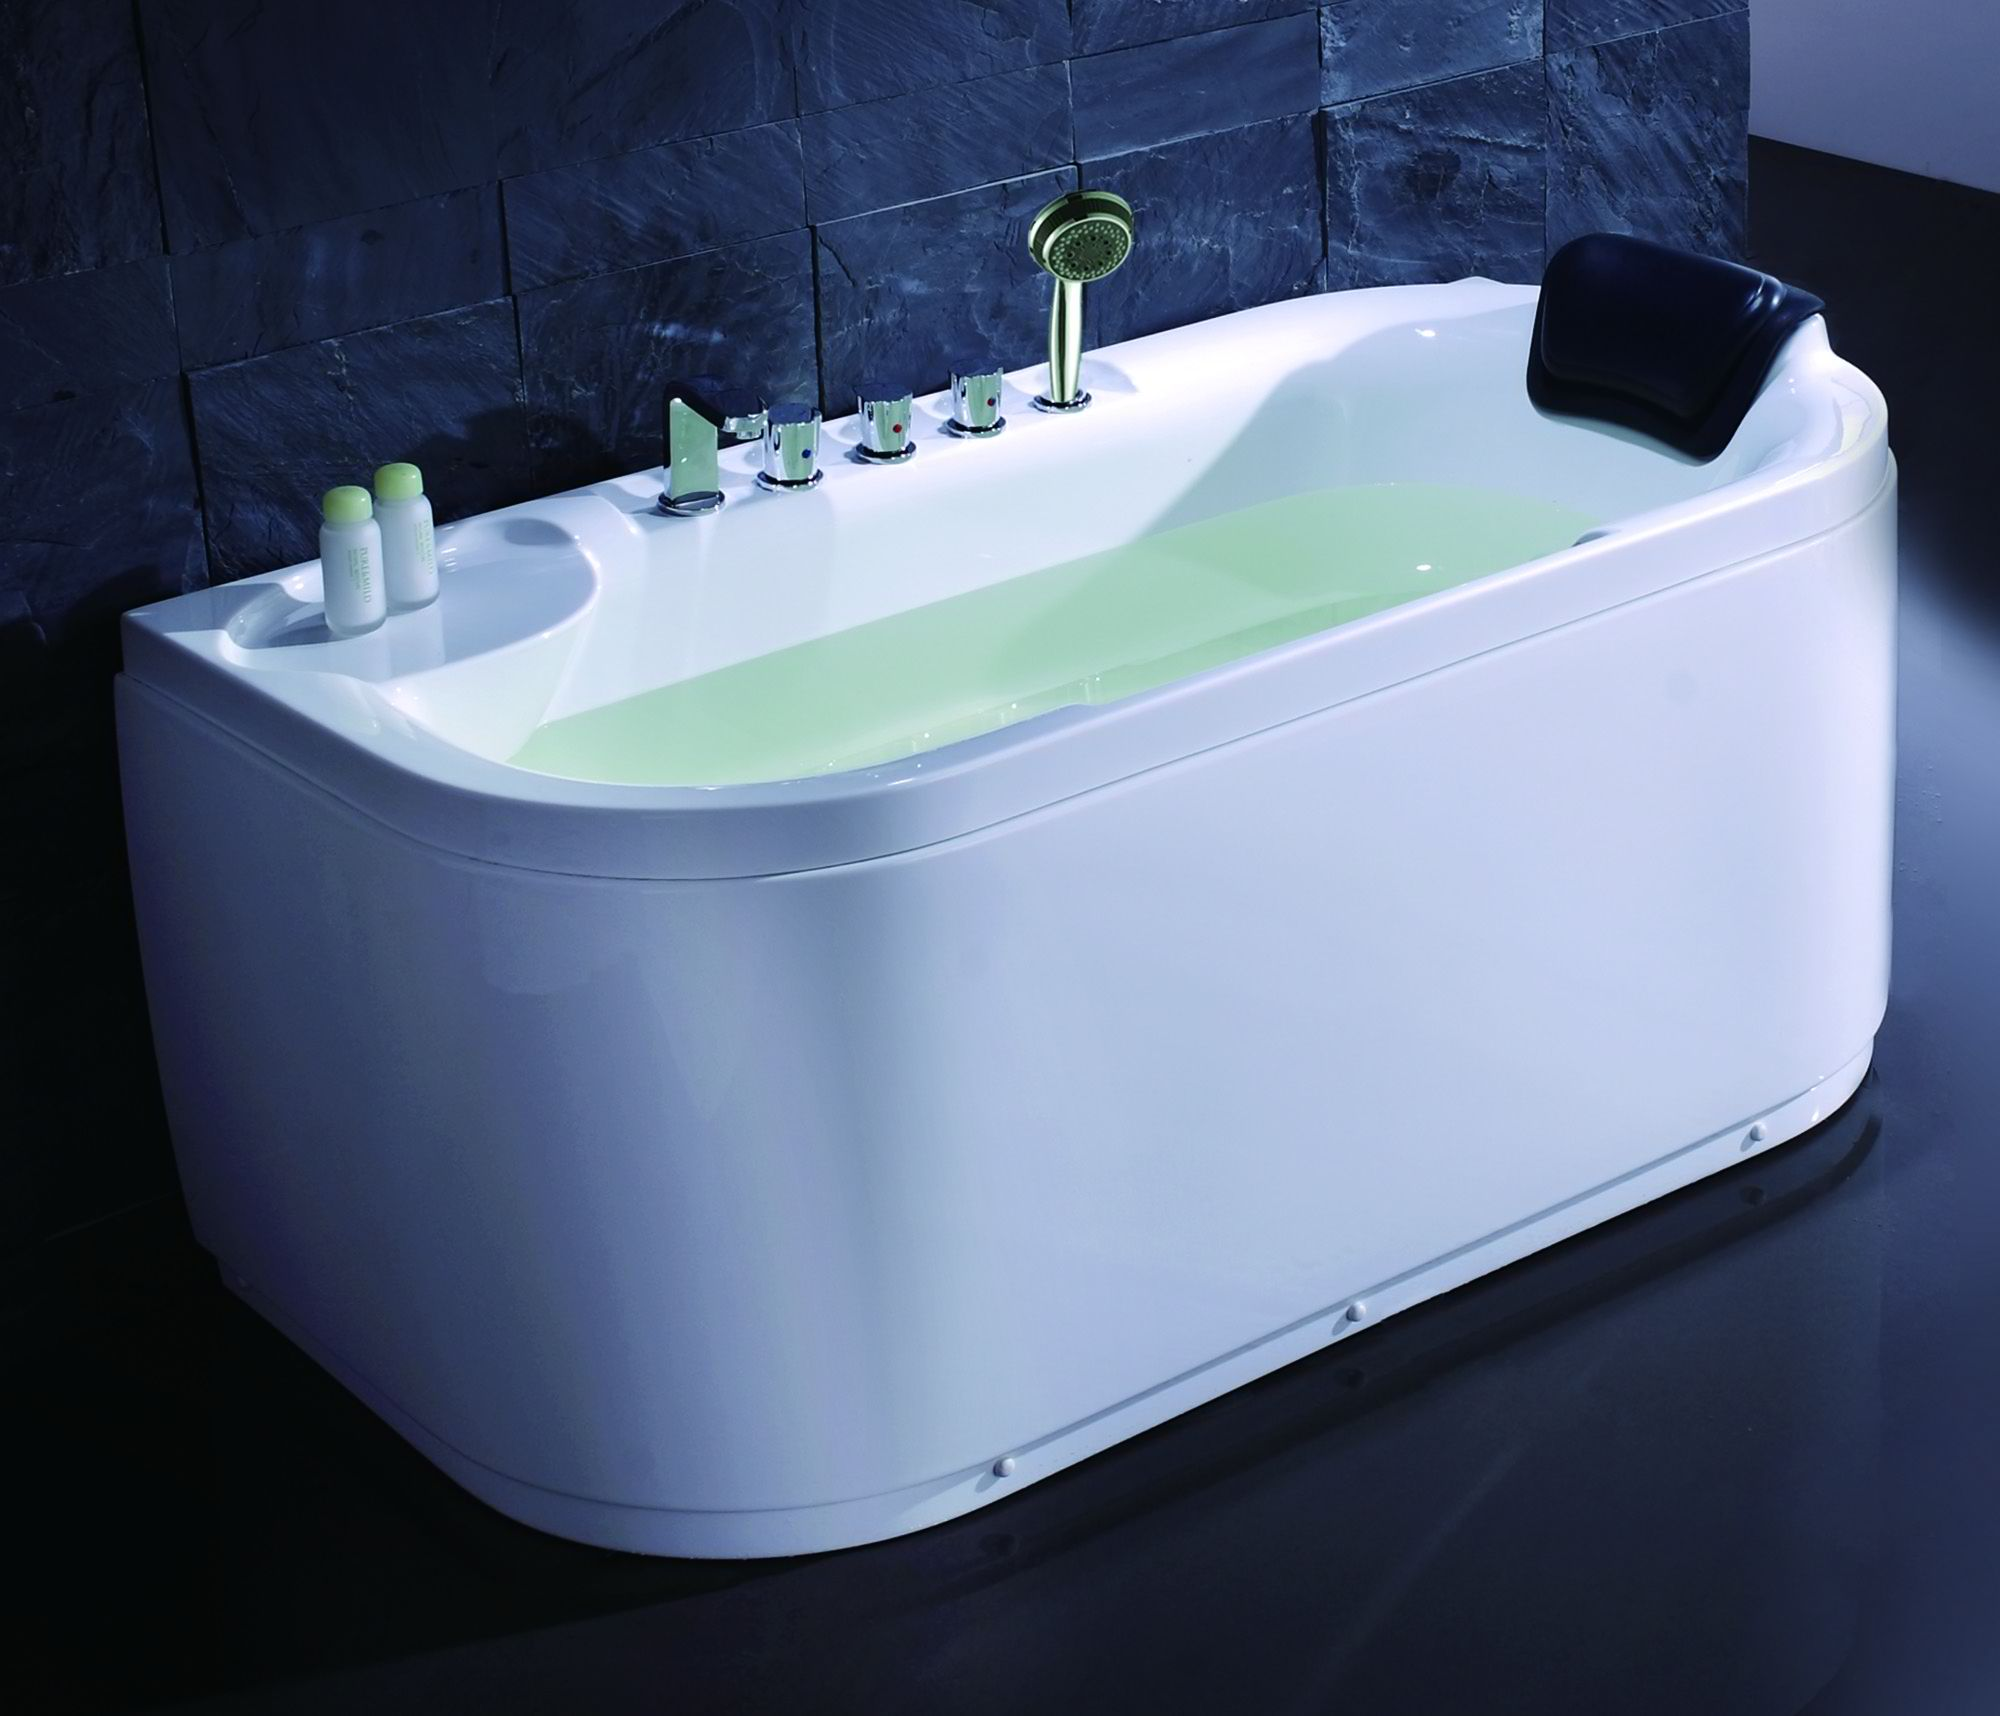 EAGO LK1104 White Left or Right Drain Acrylic 6' Soaking Tub with Fixtures